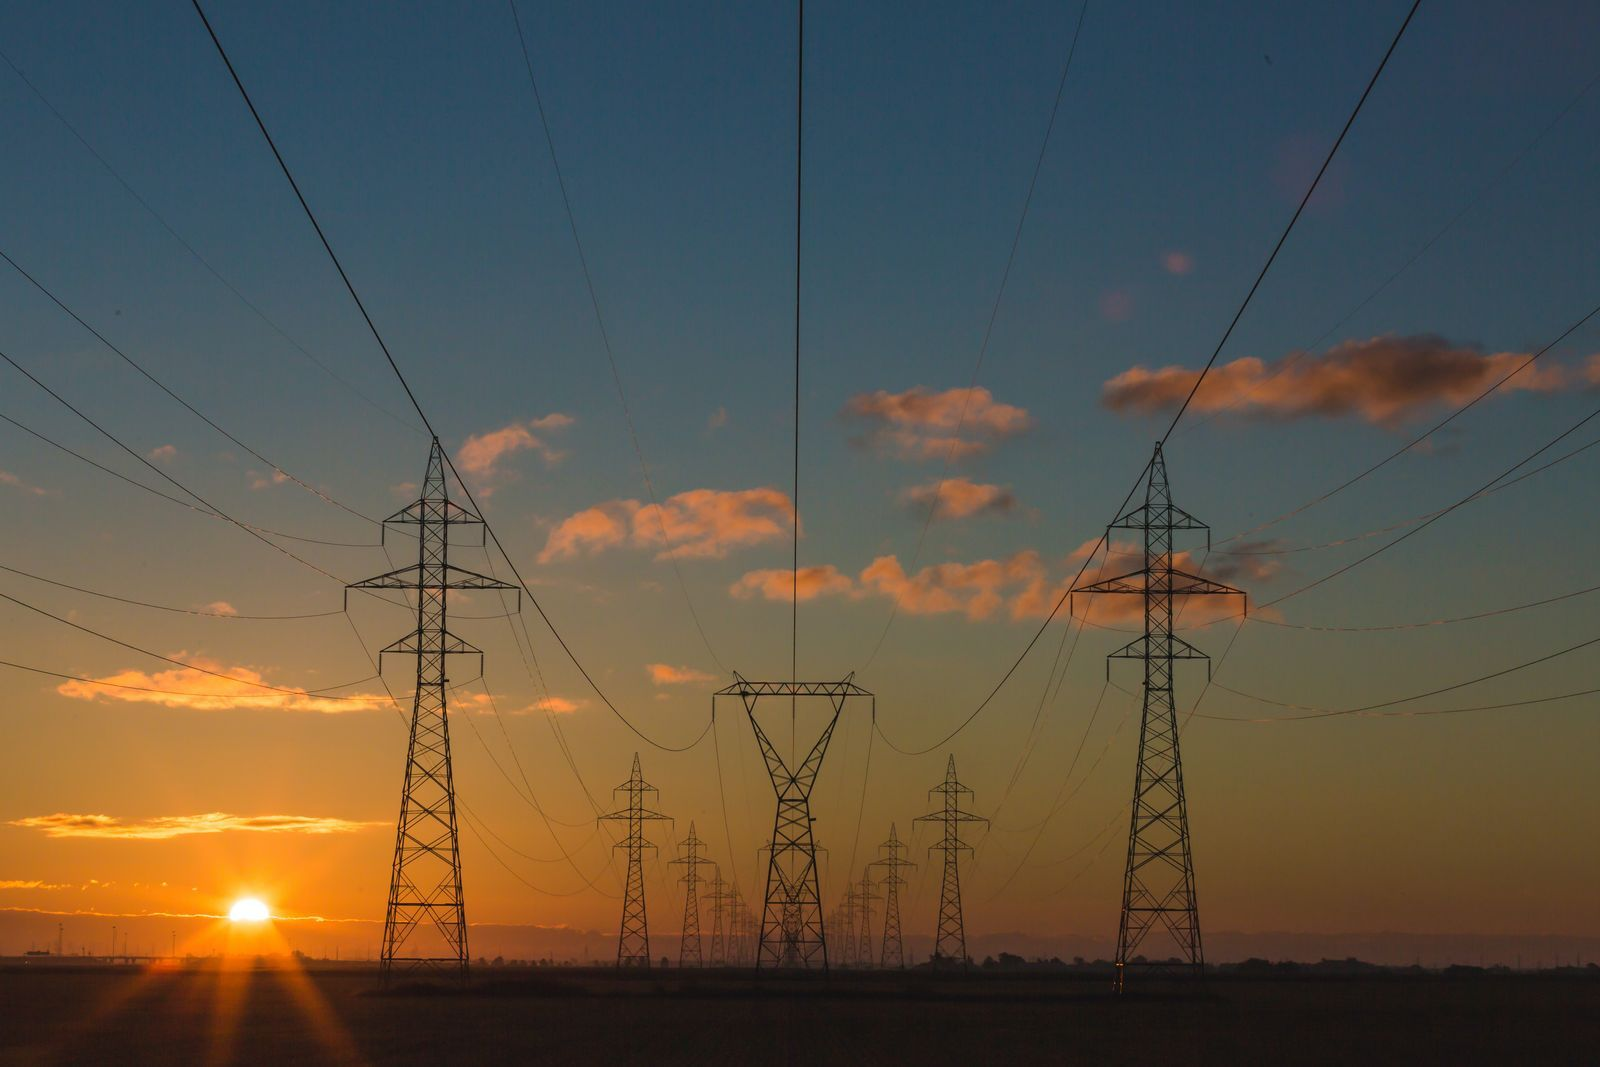 A challenging time in the energy industry